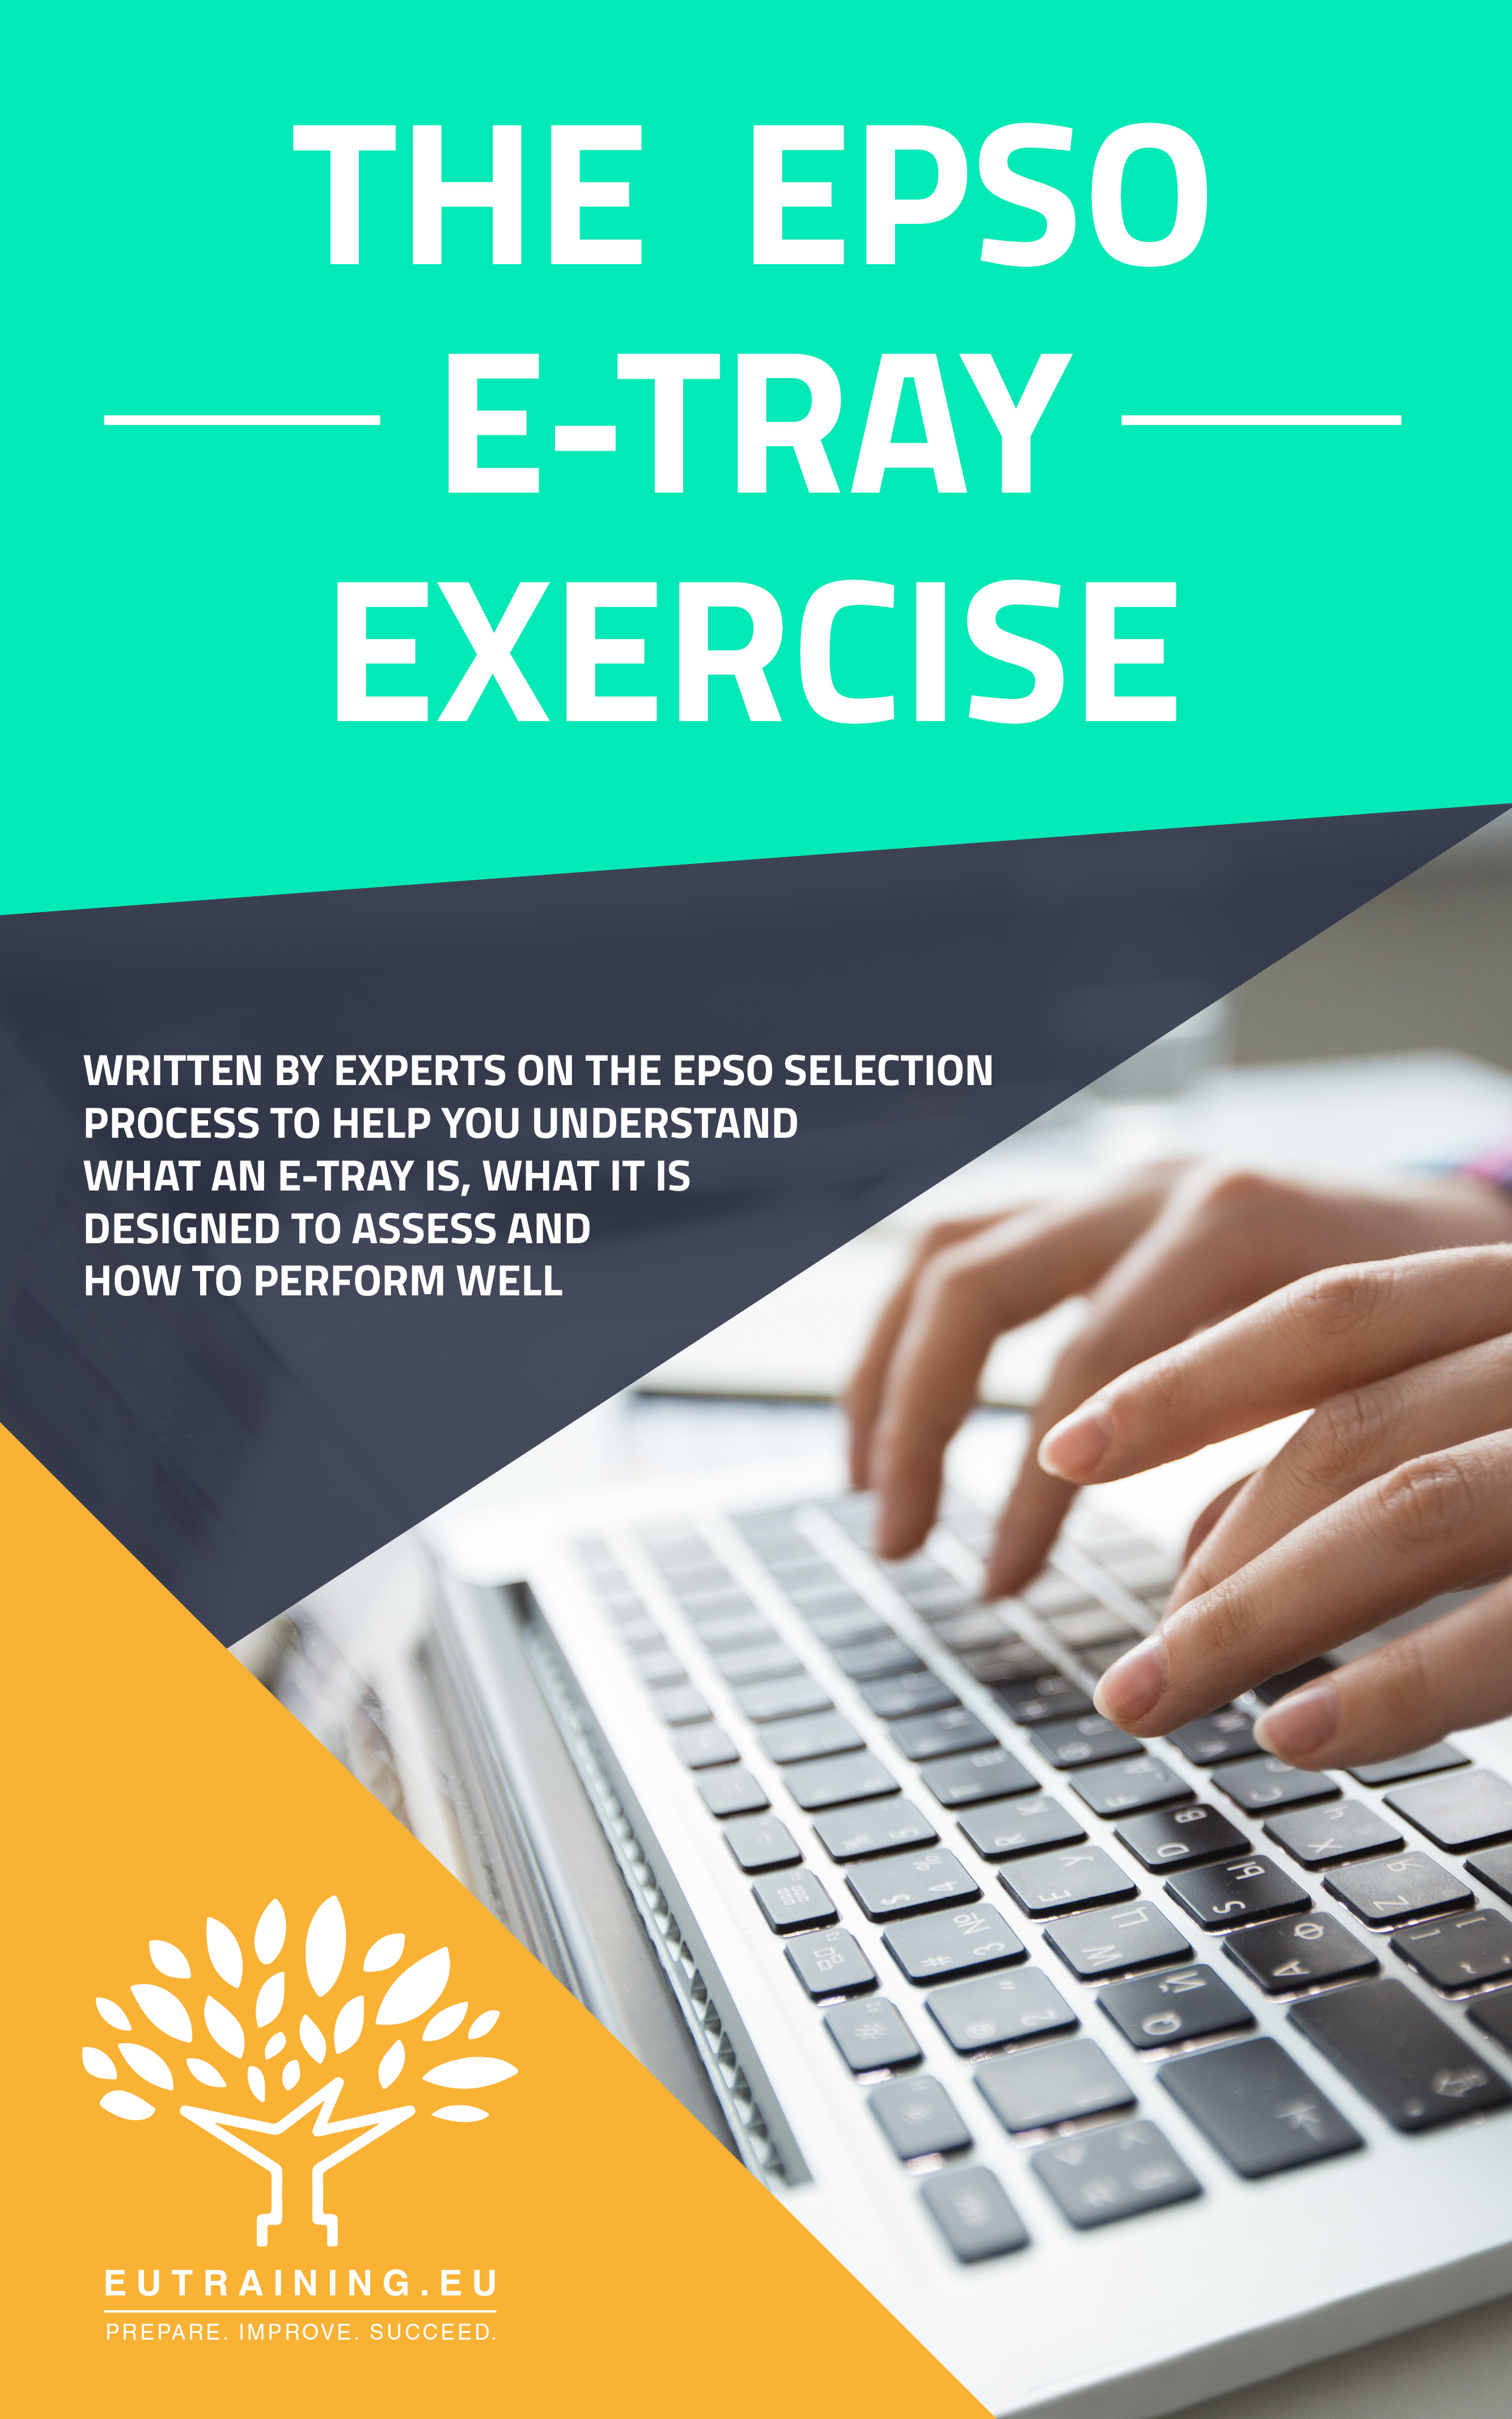 E-Book - The EPSO E-tray Exercise - E-book (FREE)